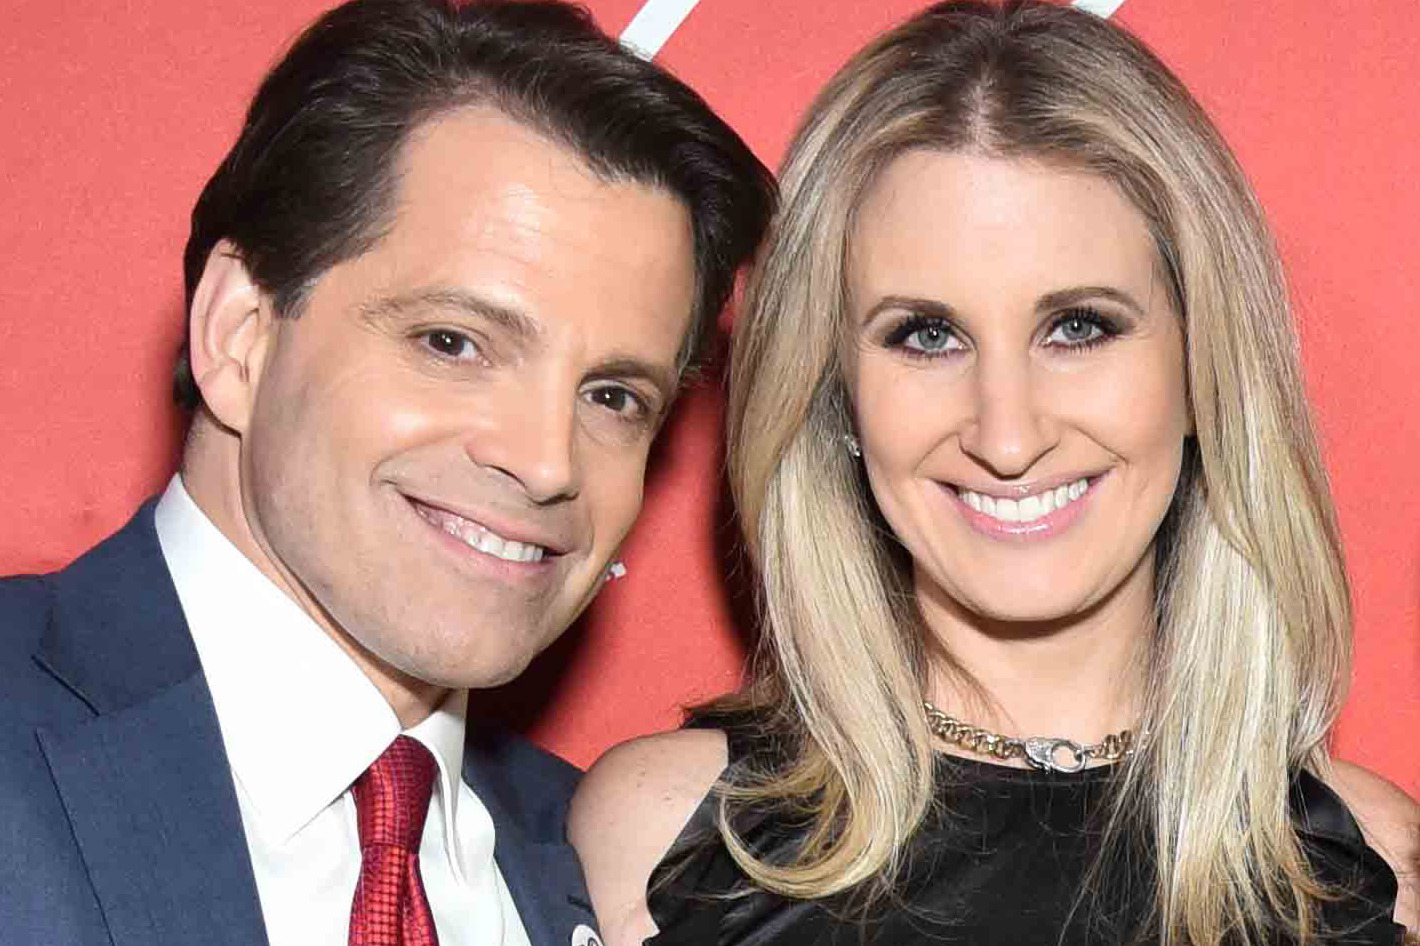 Anthony Scaramucci S Wife Files For Divorce